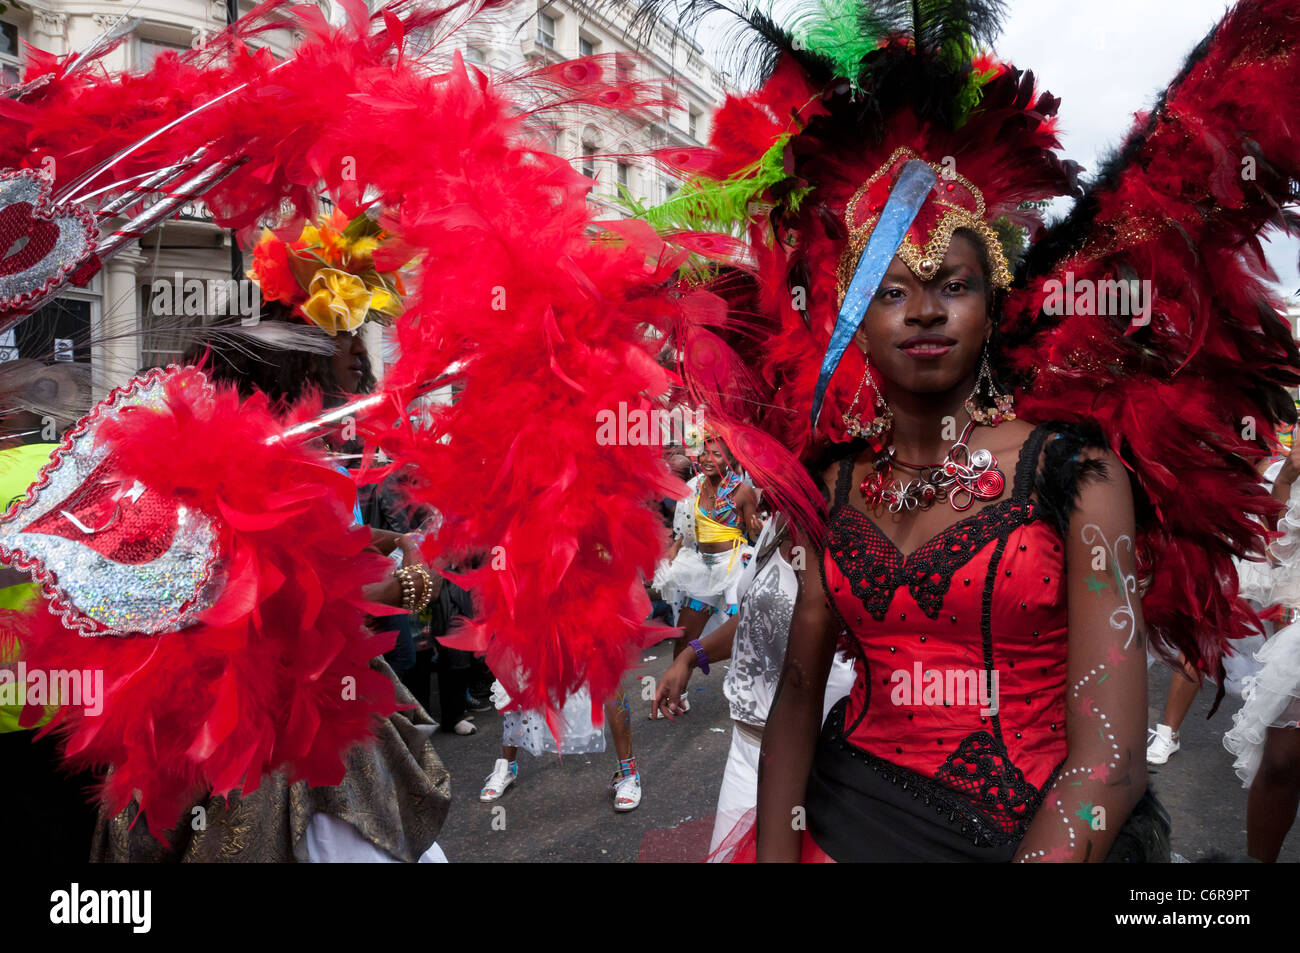 West Indies Dance and music band at Notting Hill carnival 2011. London. England - Stock Image